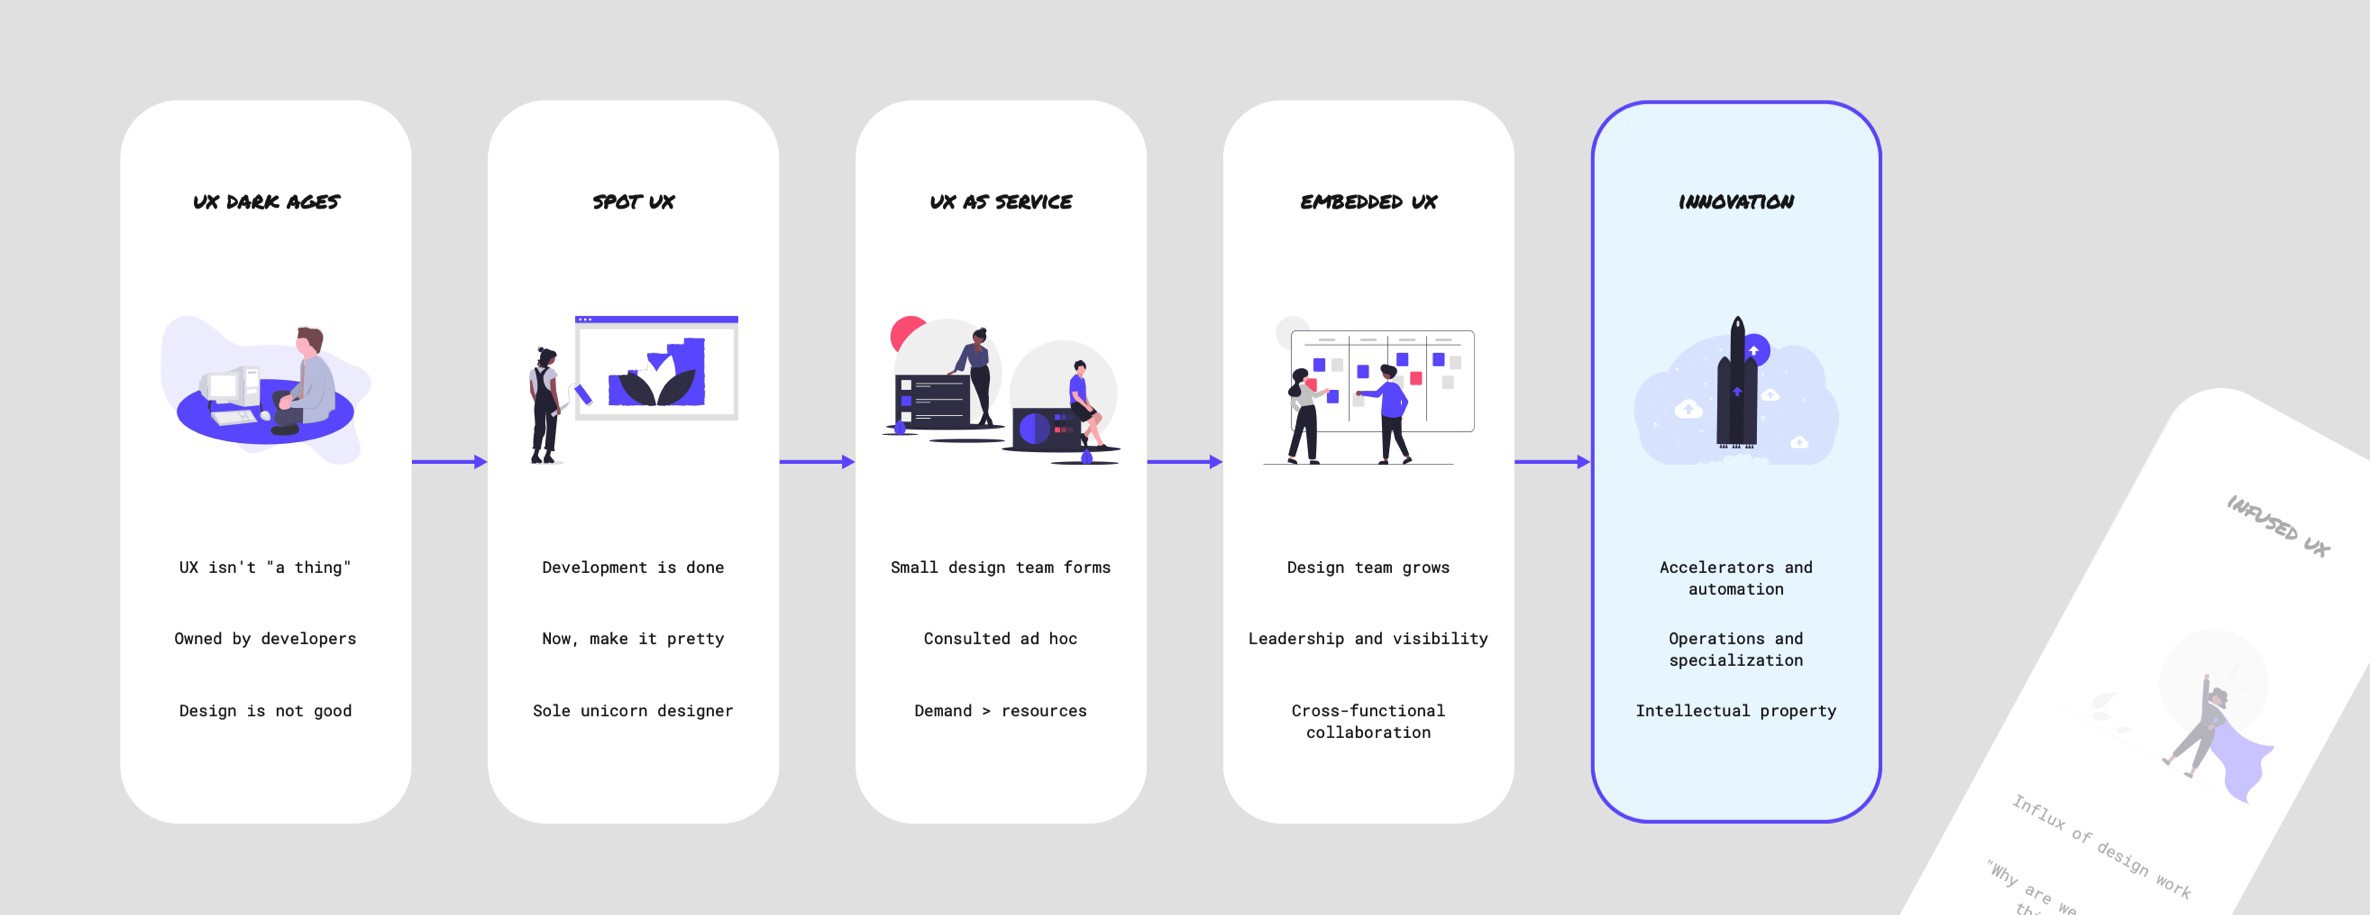 The loop between UX as a Service and Embedded UX is finally broken with the introduction of Innovation.